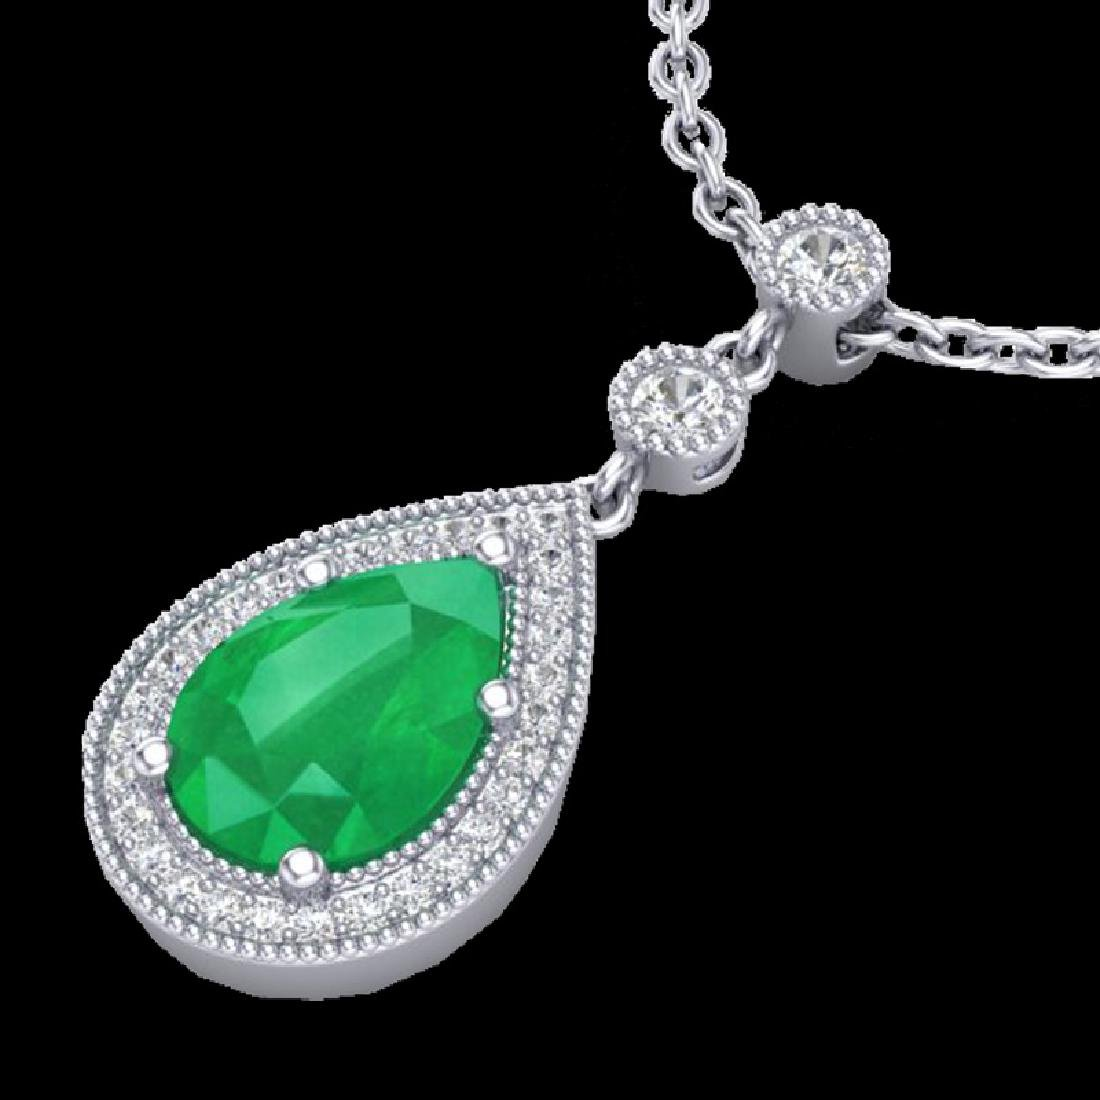 2.75 CTW Emerald & Micro Pave VS/SI Diamond Necklace